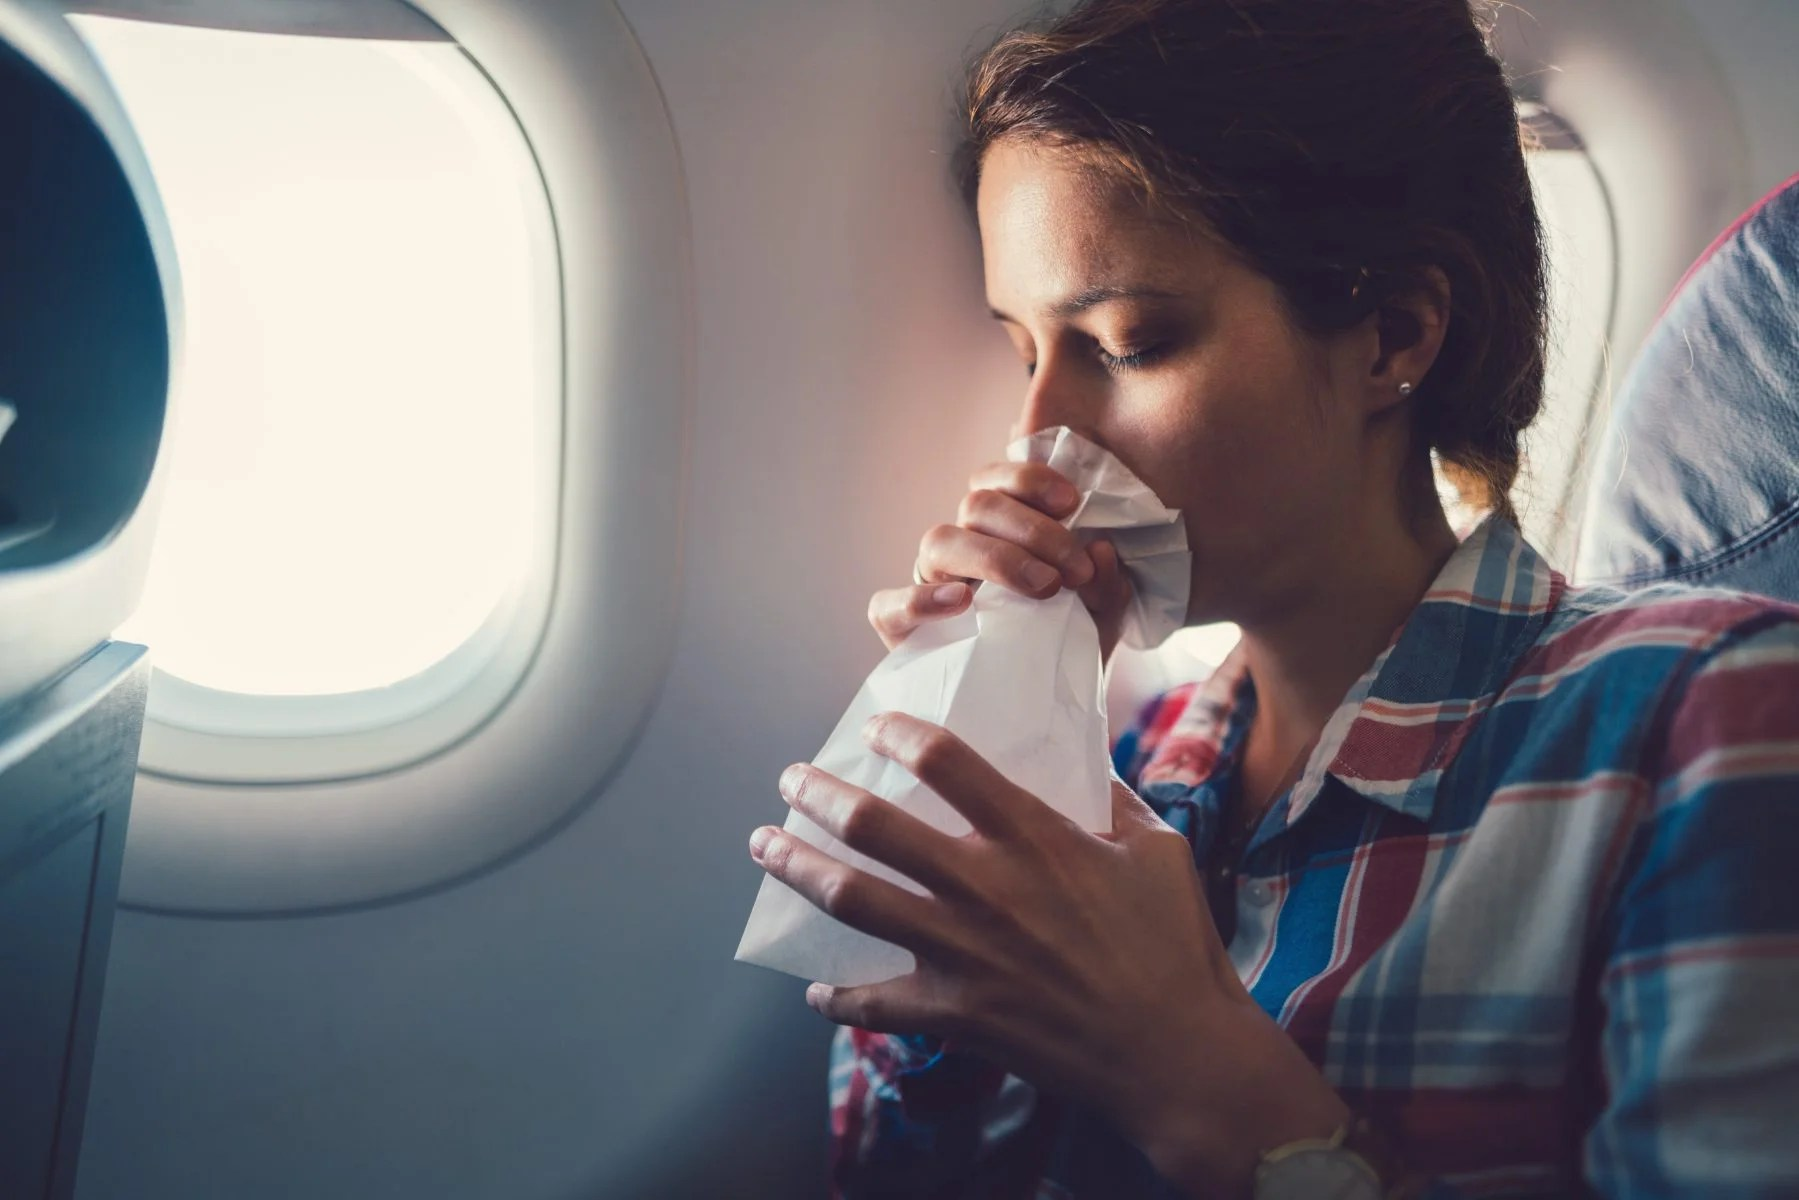 Airplanes are common places that travelers end up catching the cold or flu. But Following These 10 Tips, Will Keep You Healthy on Your Next Flight.